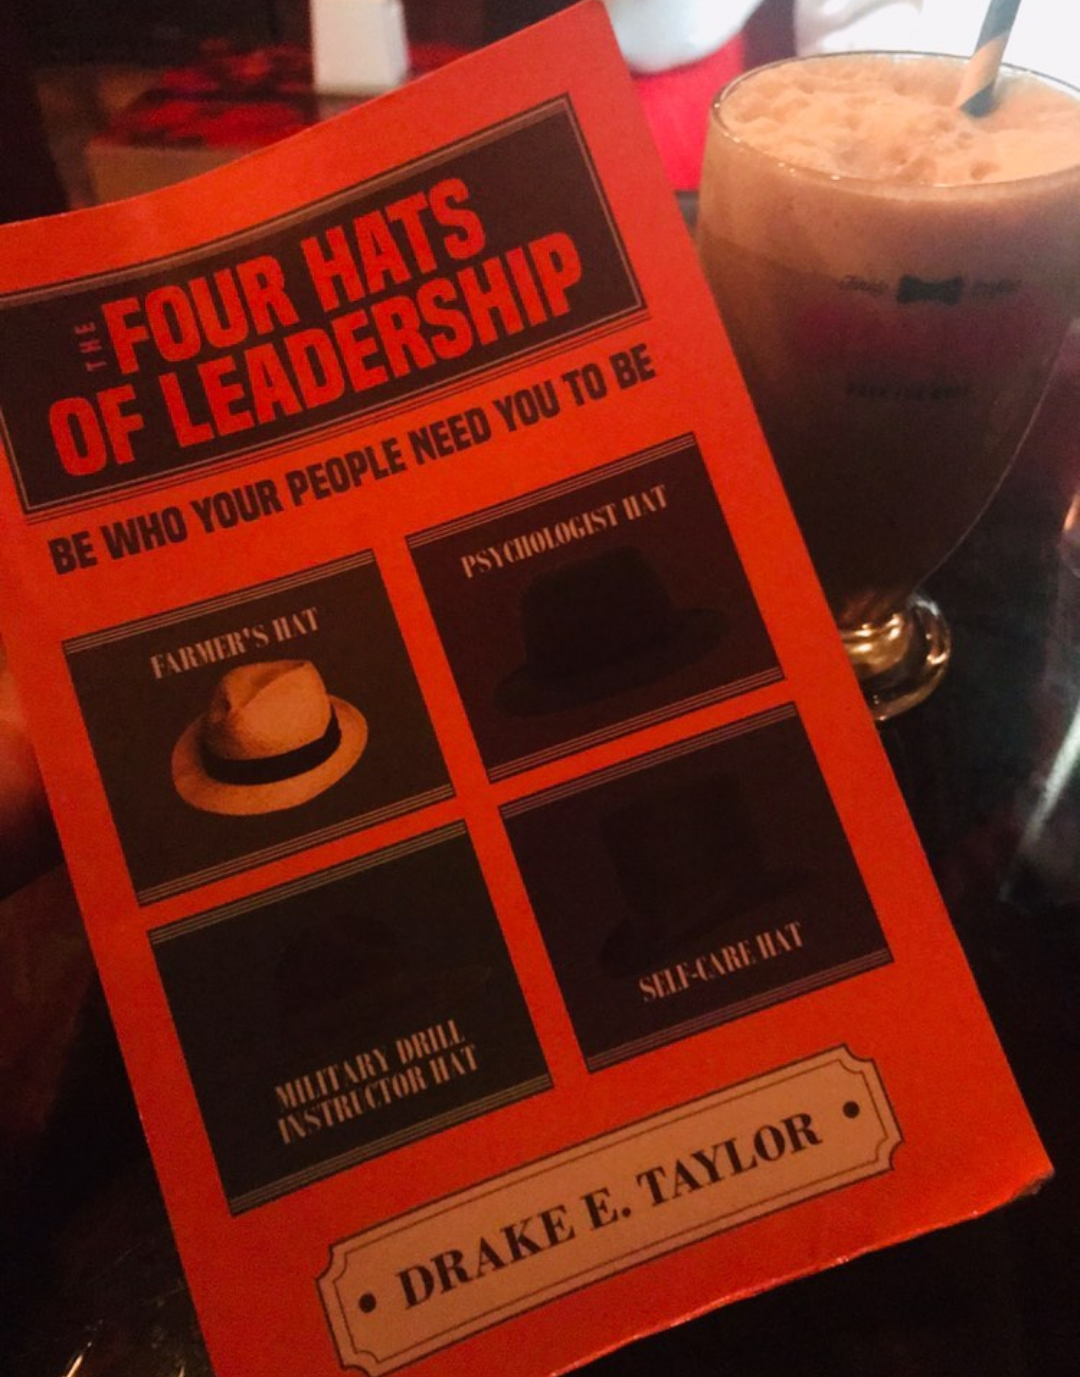 Book Review - The Four Hats of Leadership : Be Who Your People Need You To Be - by Drake E Taylor